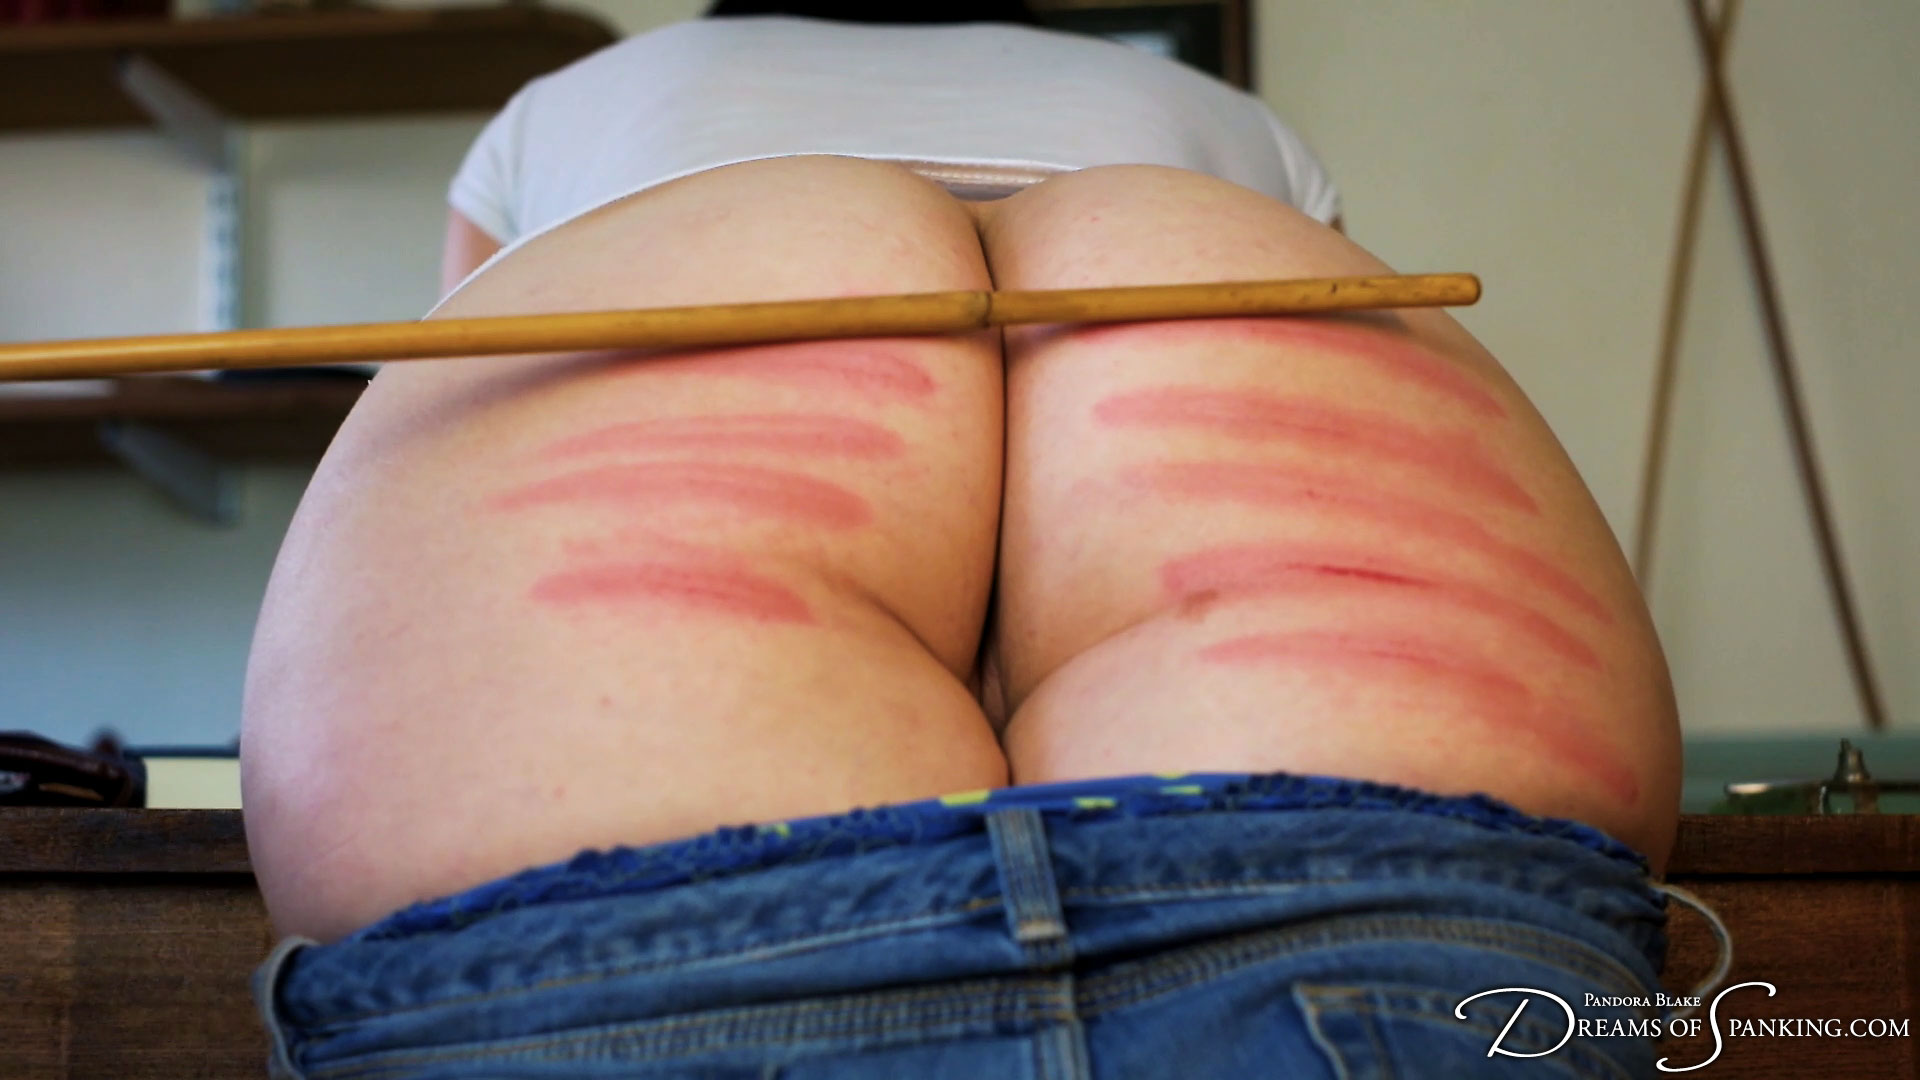 Vote for MxBlake for Fetish Star of the Year to receive an exclusive schoolgirl caning video